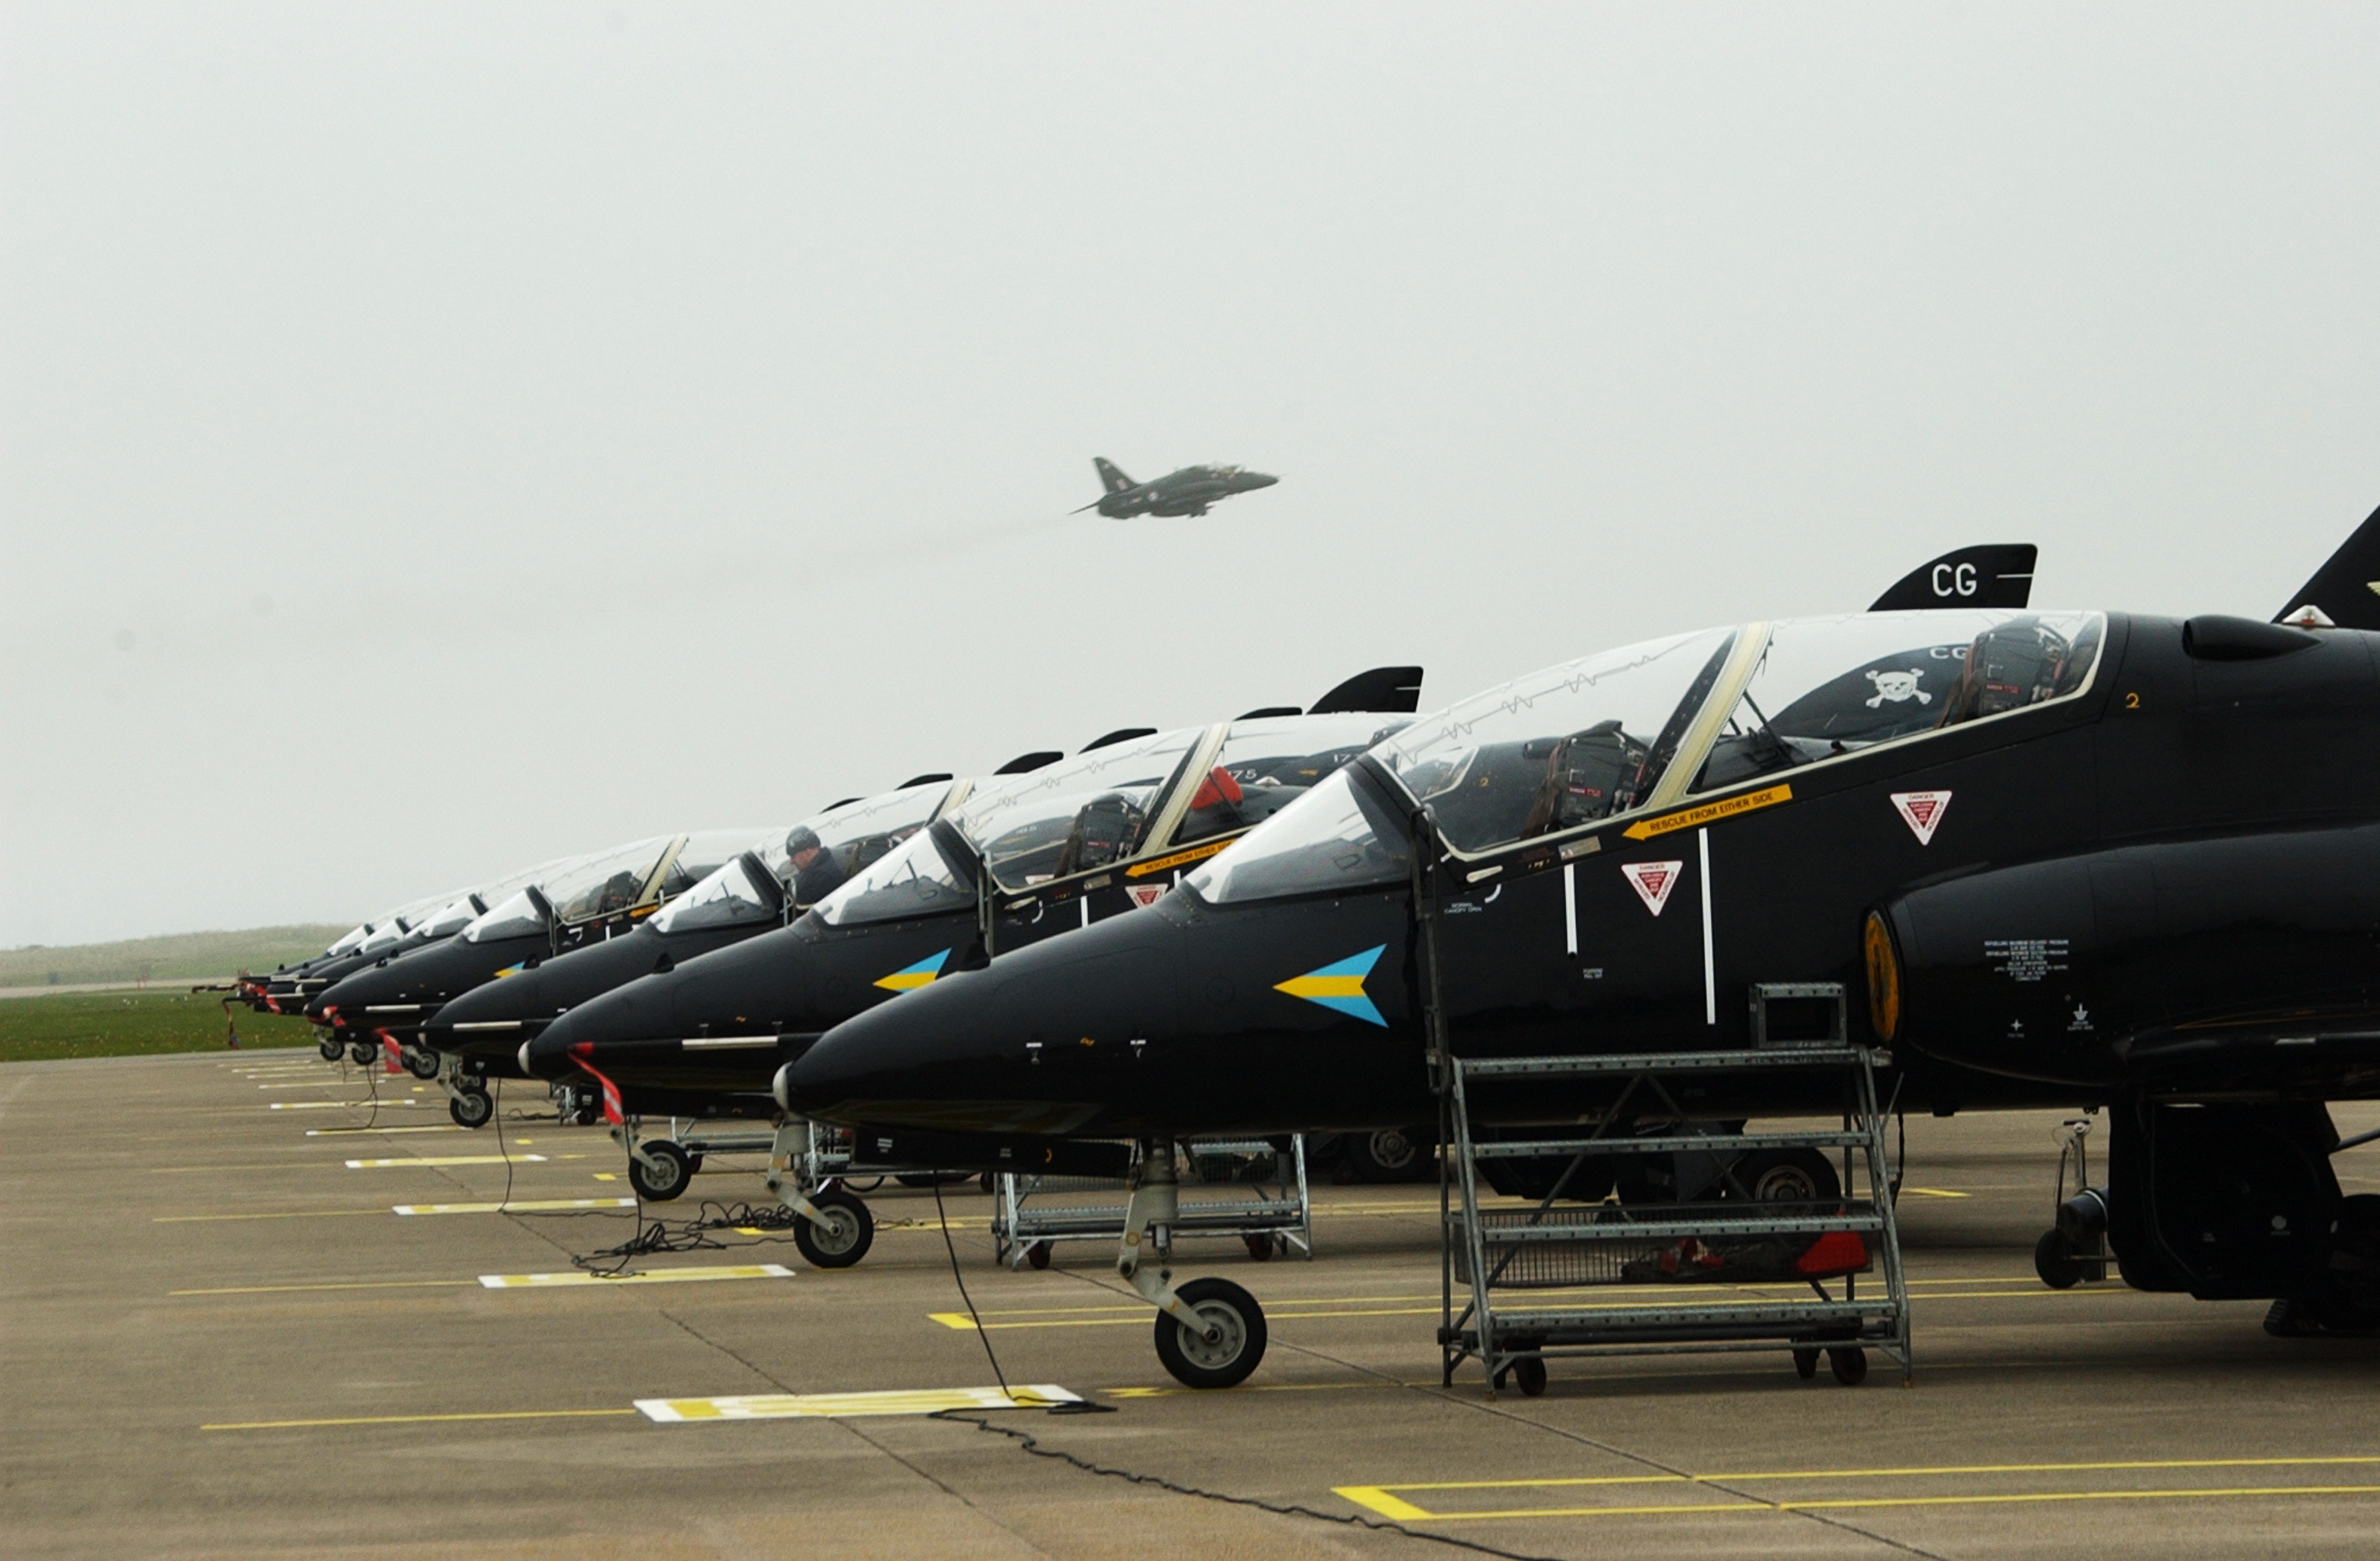 File:Hawk Aircraft Lined up on the Line at RAF Valley MOD 45142177.jpg